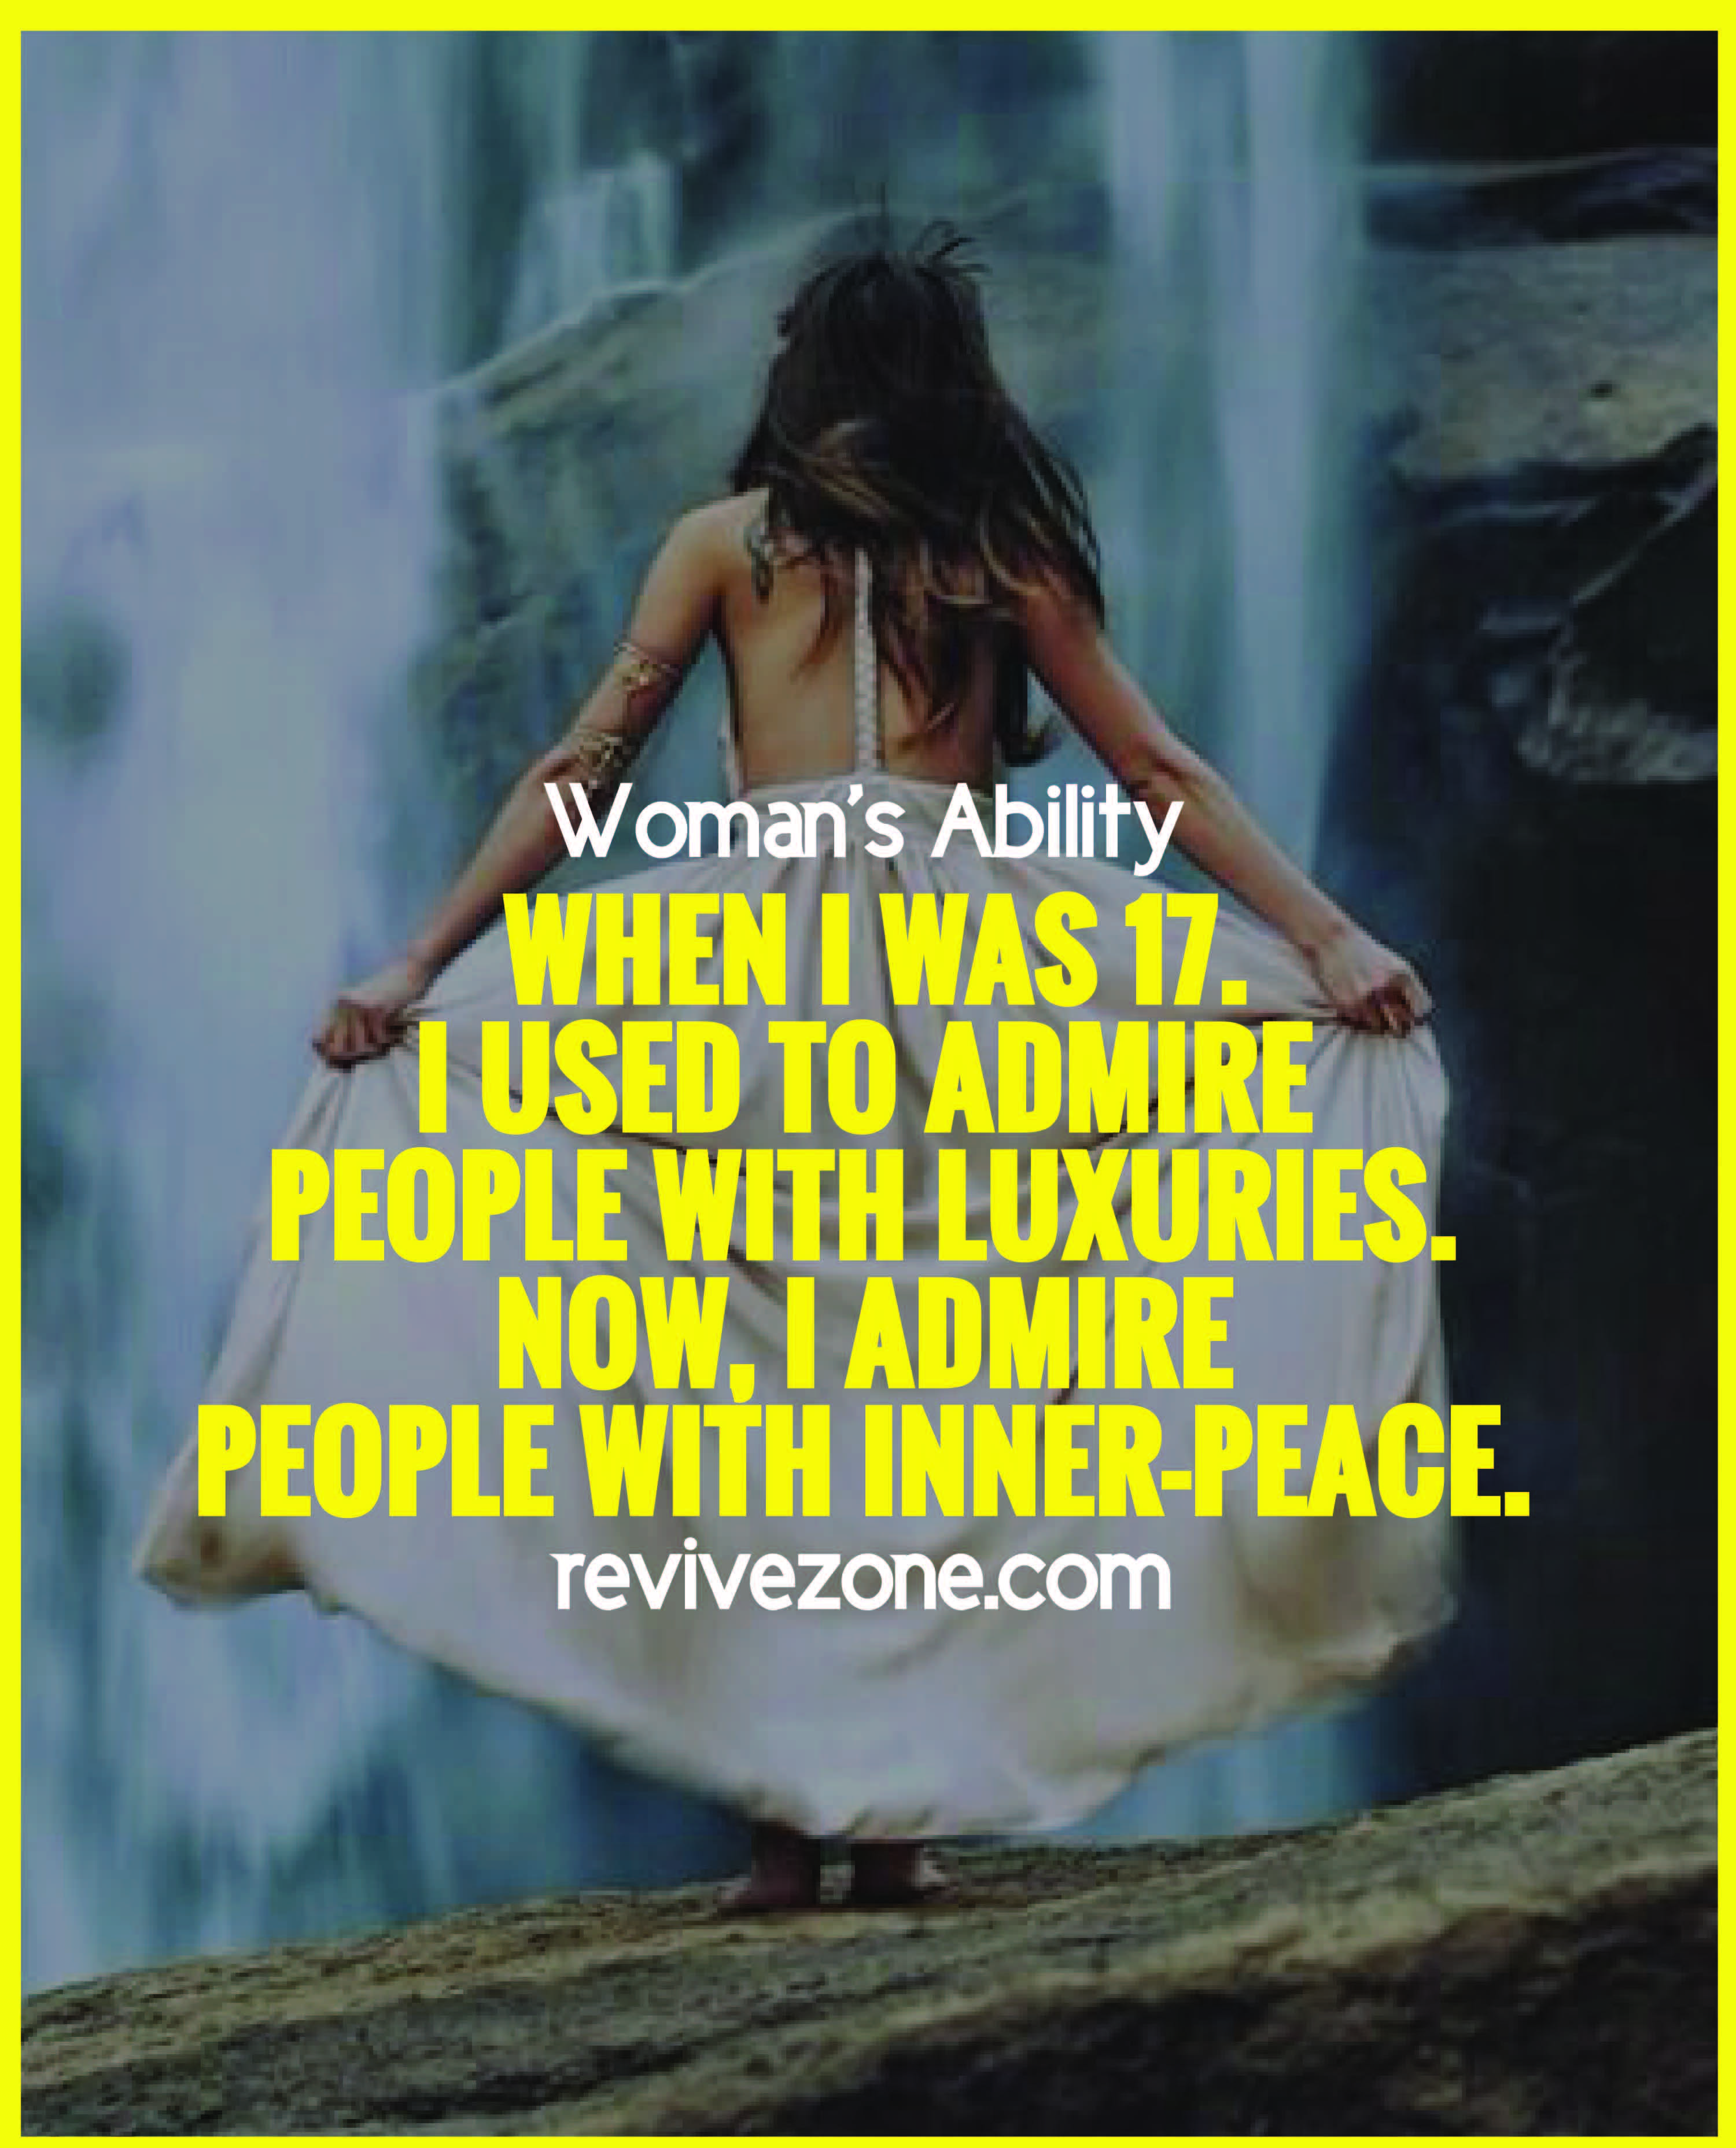 Quotes On Female Strength: Quote, Motivational, Inspirational, Confidence, About